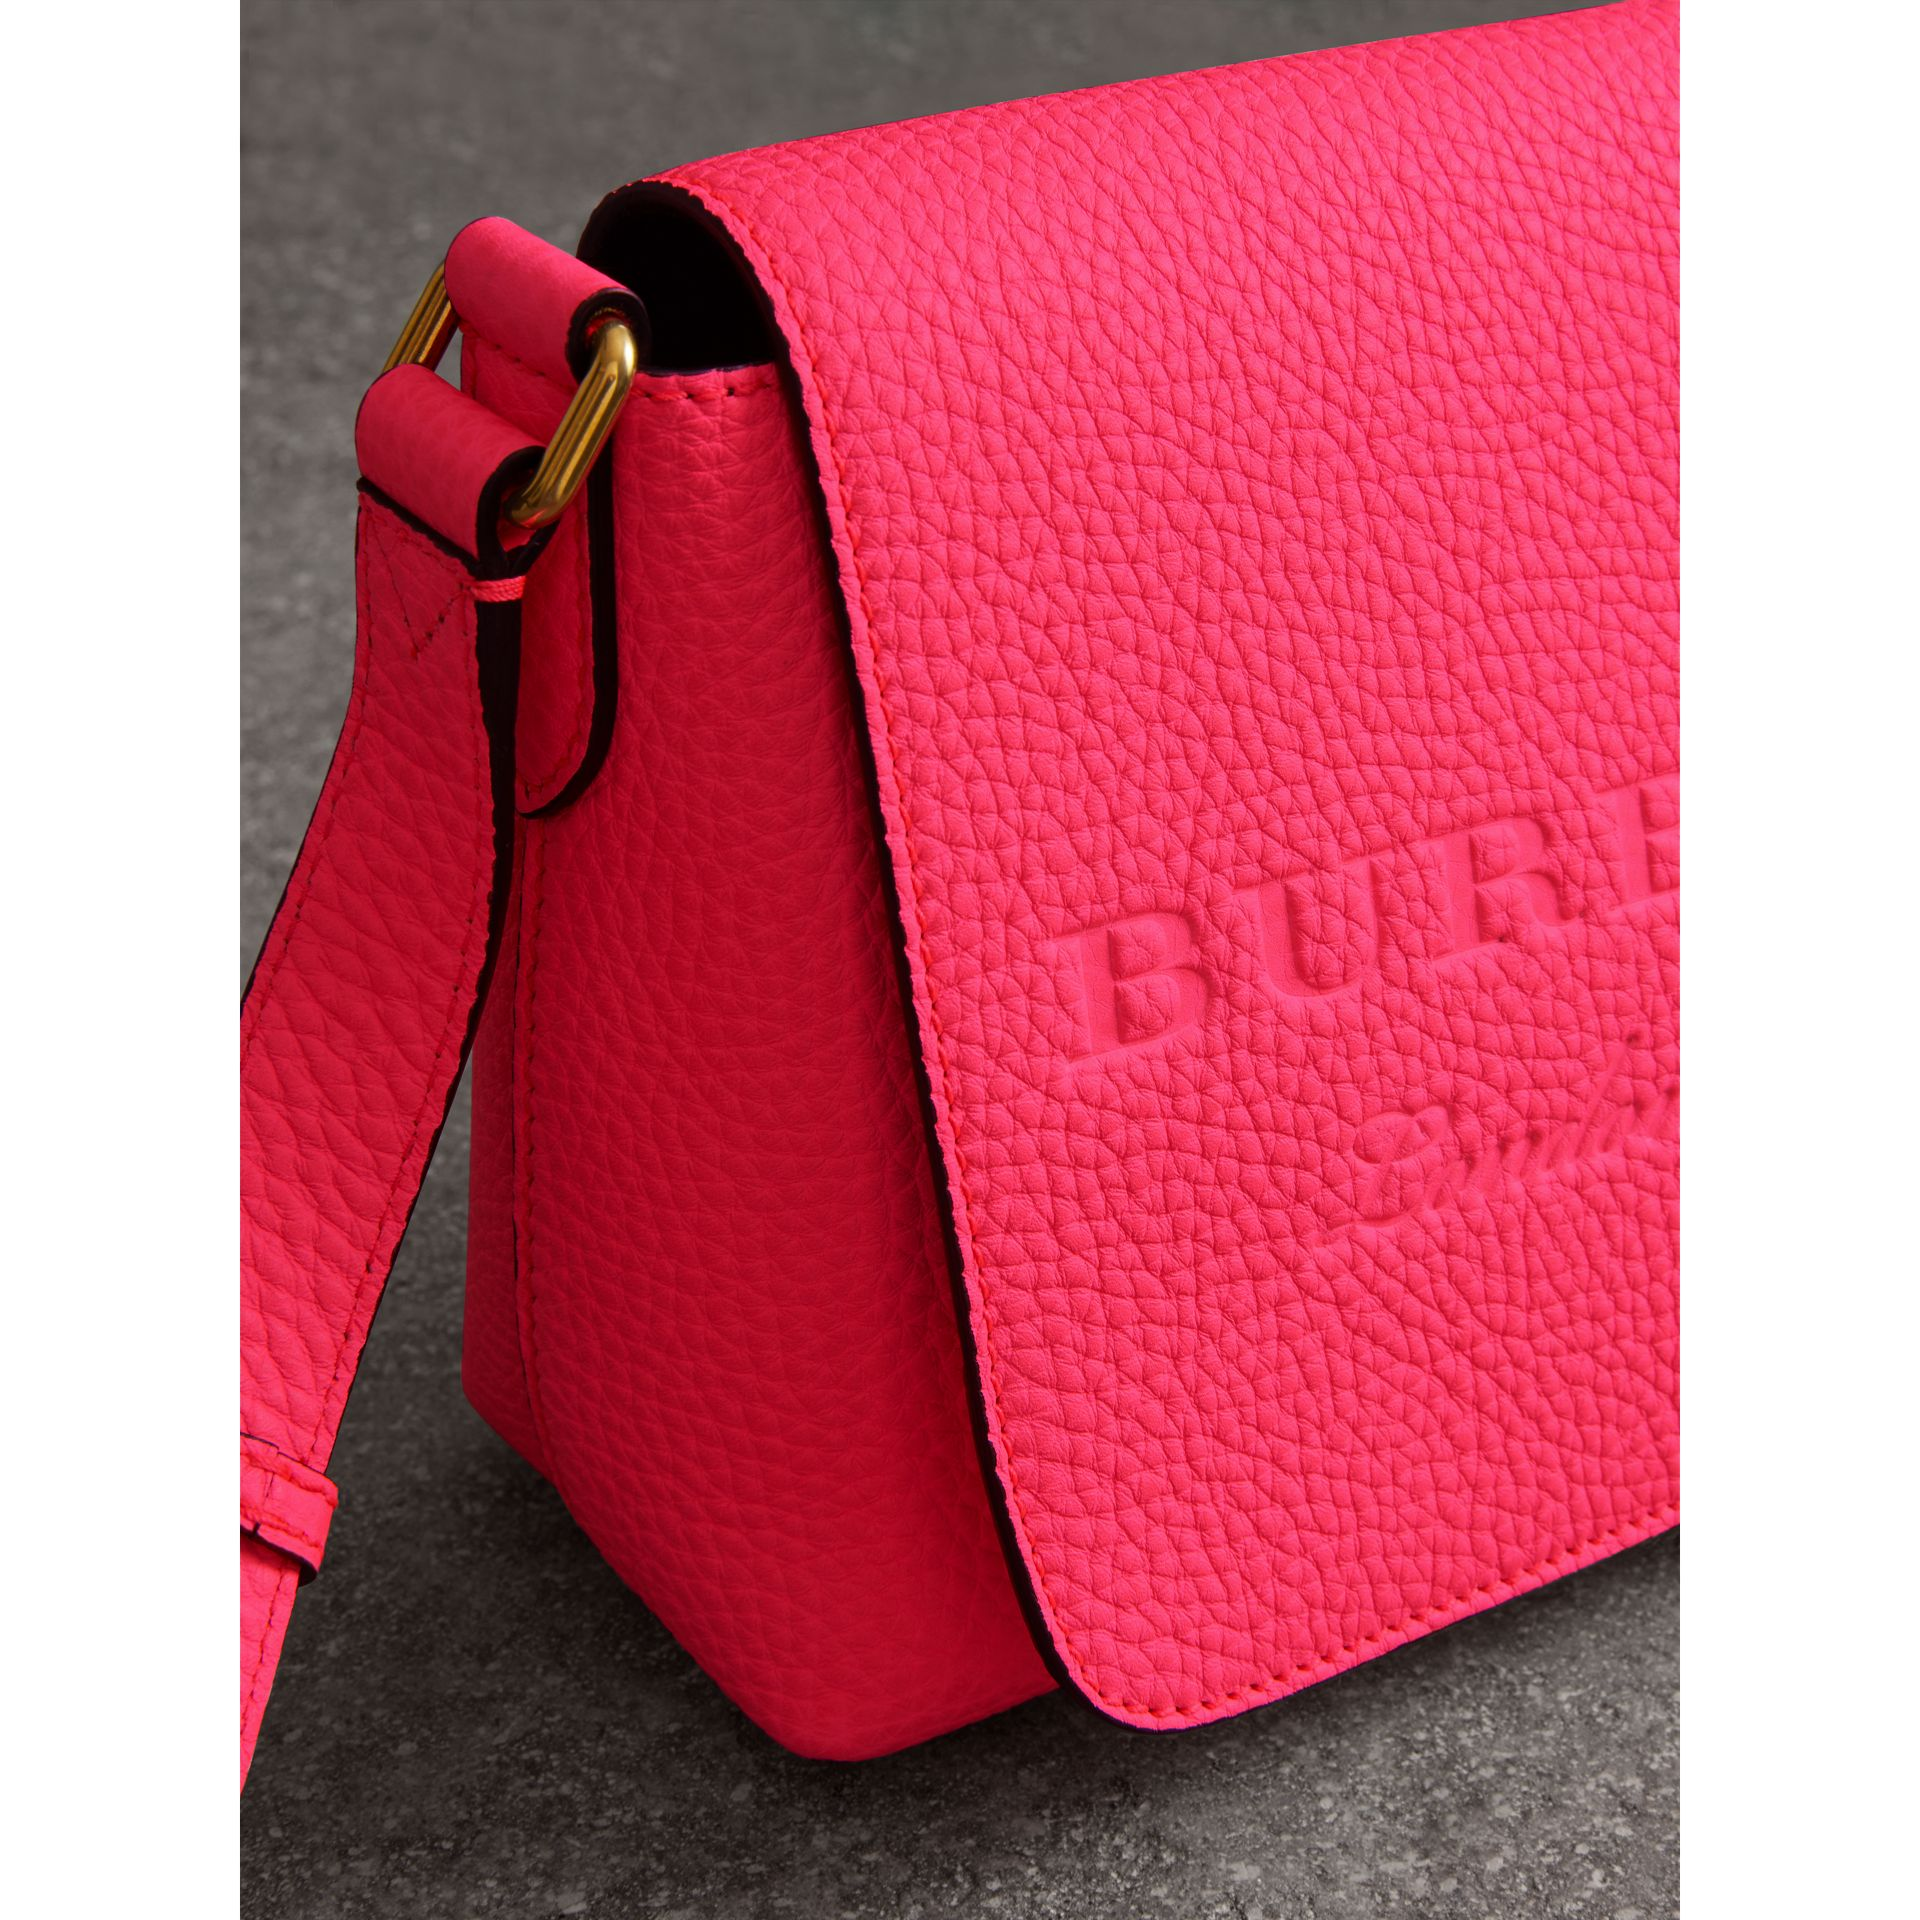 Small Embossed Neon Leather Messenger Bag in Pink - Women | Burberry United States - gallery image 1